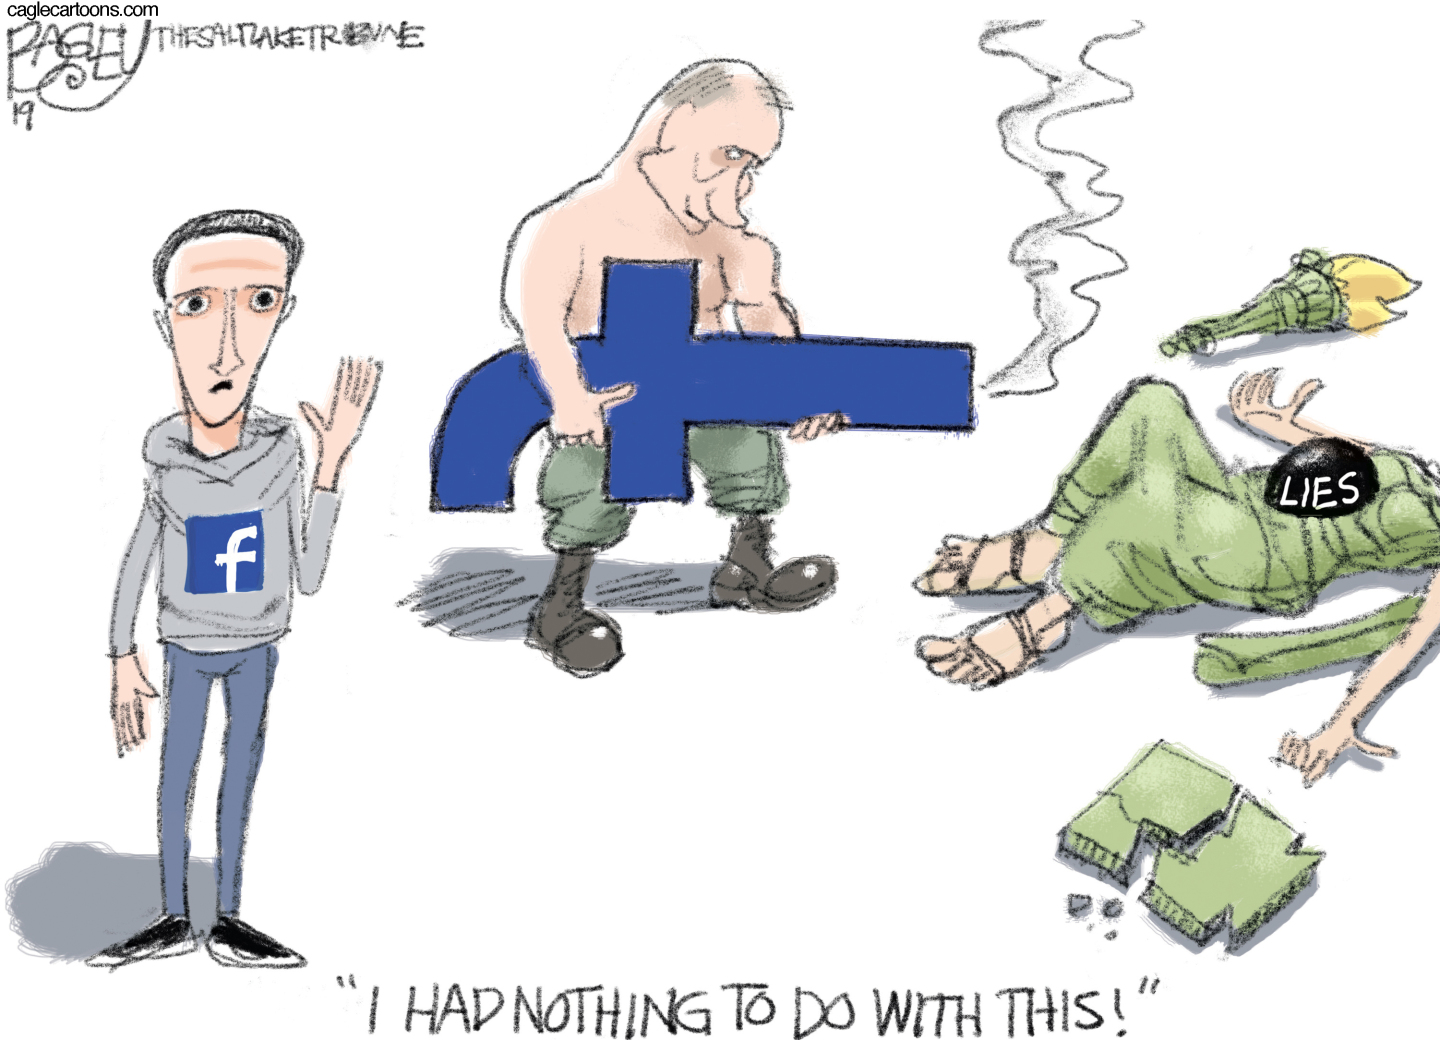 Facebook harms democracy, society and spreads COVID disinformation for the sake of profits while concealing its activities.